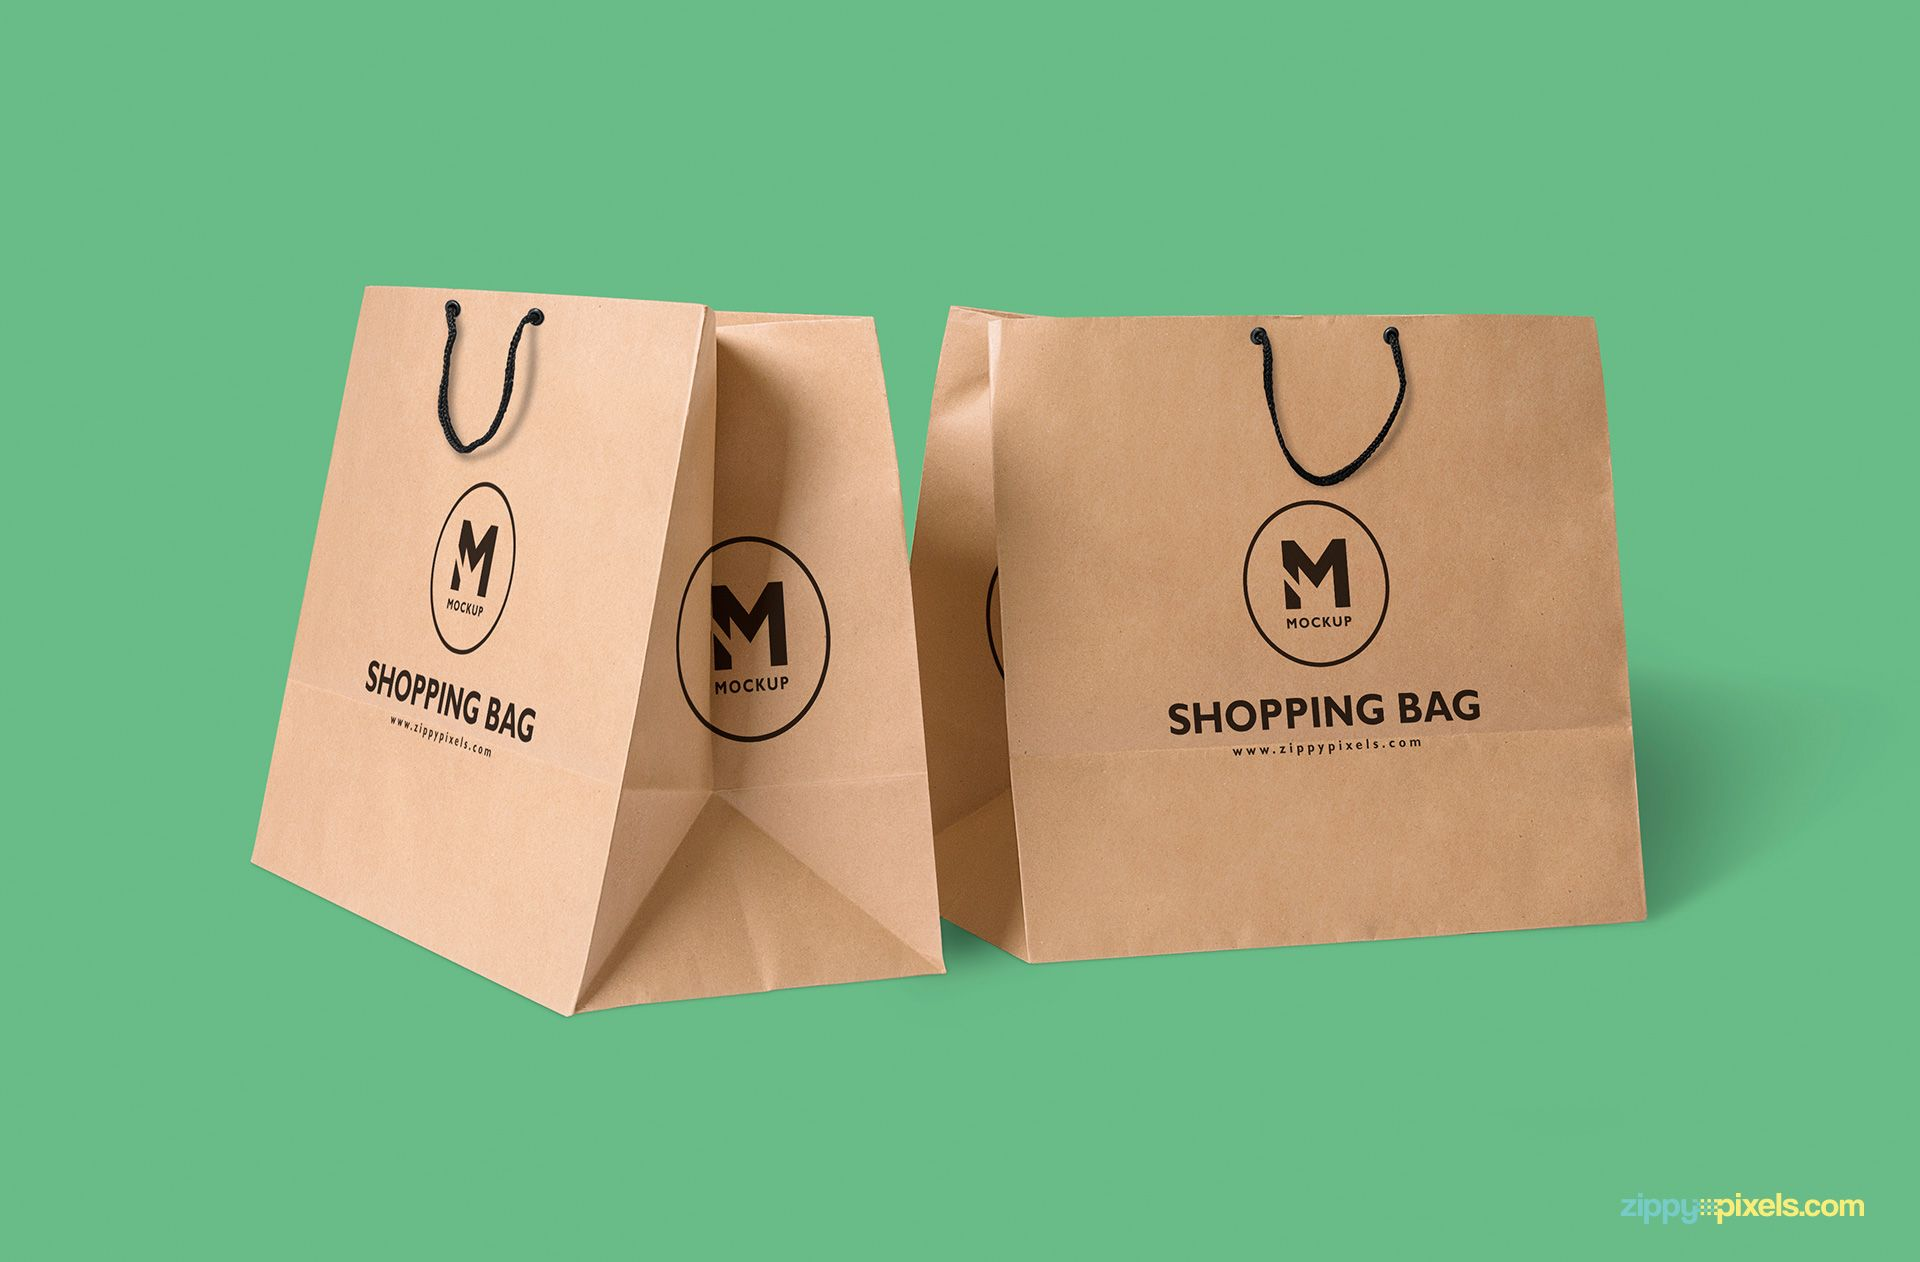 Download Paper Bag Mockup Free Psd Download Zippypixels Bag Mockup Print On Paper Bags Free Packaging Mockup